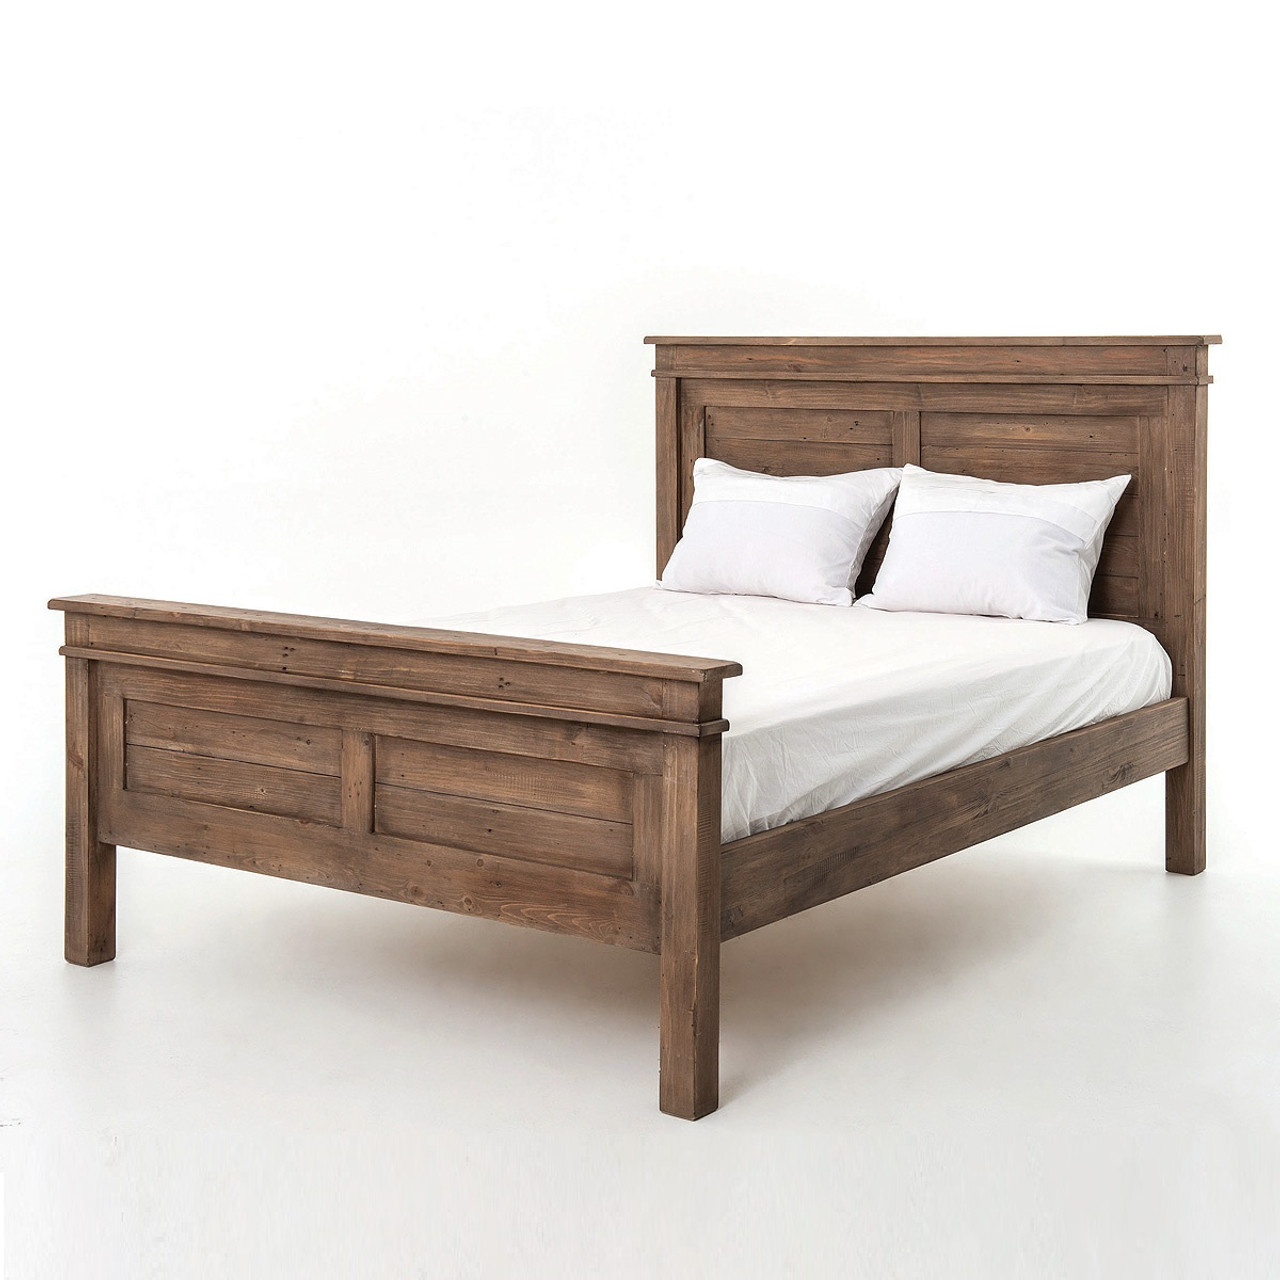 Charmant Sierra Reclaimed Wood King Size Platform Bed